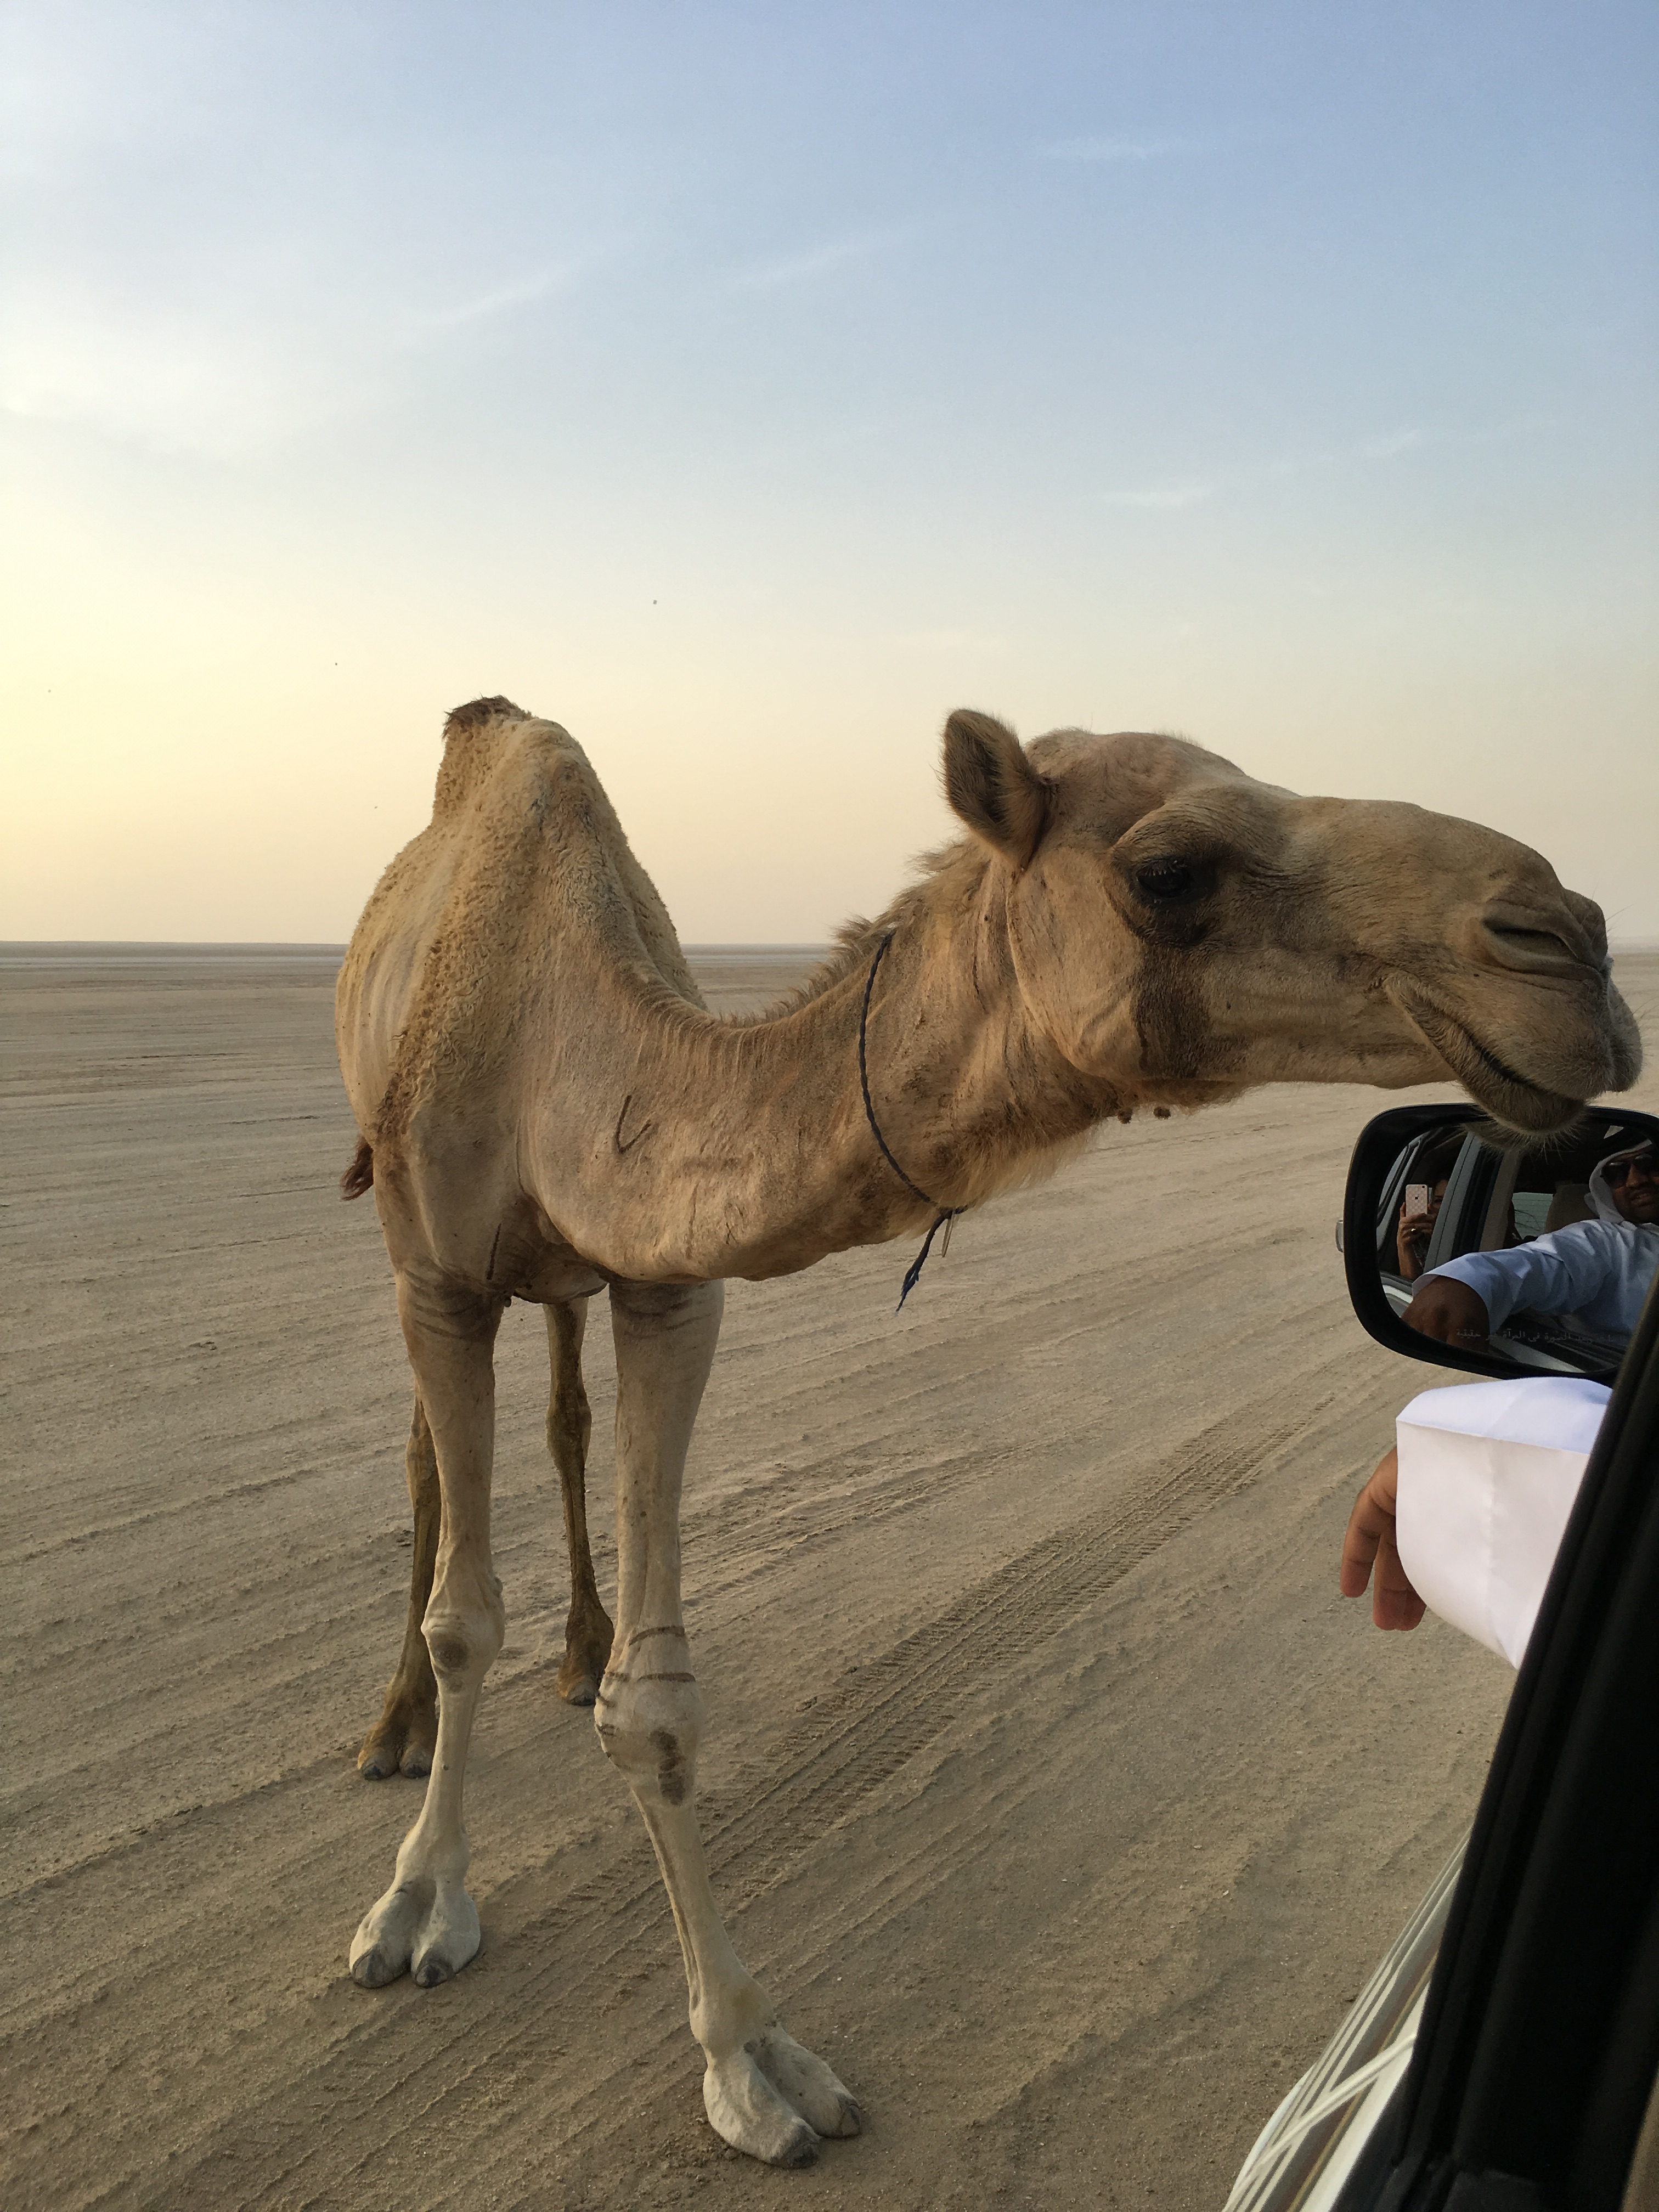 Monique Lhuillier travel diary: Such an incredible experience meeting this little guy